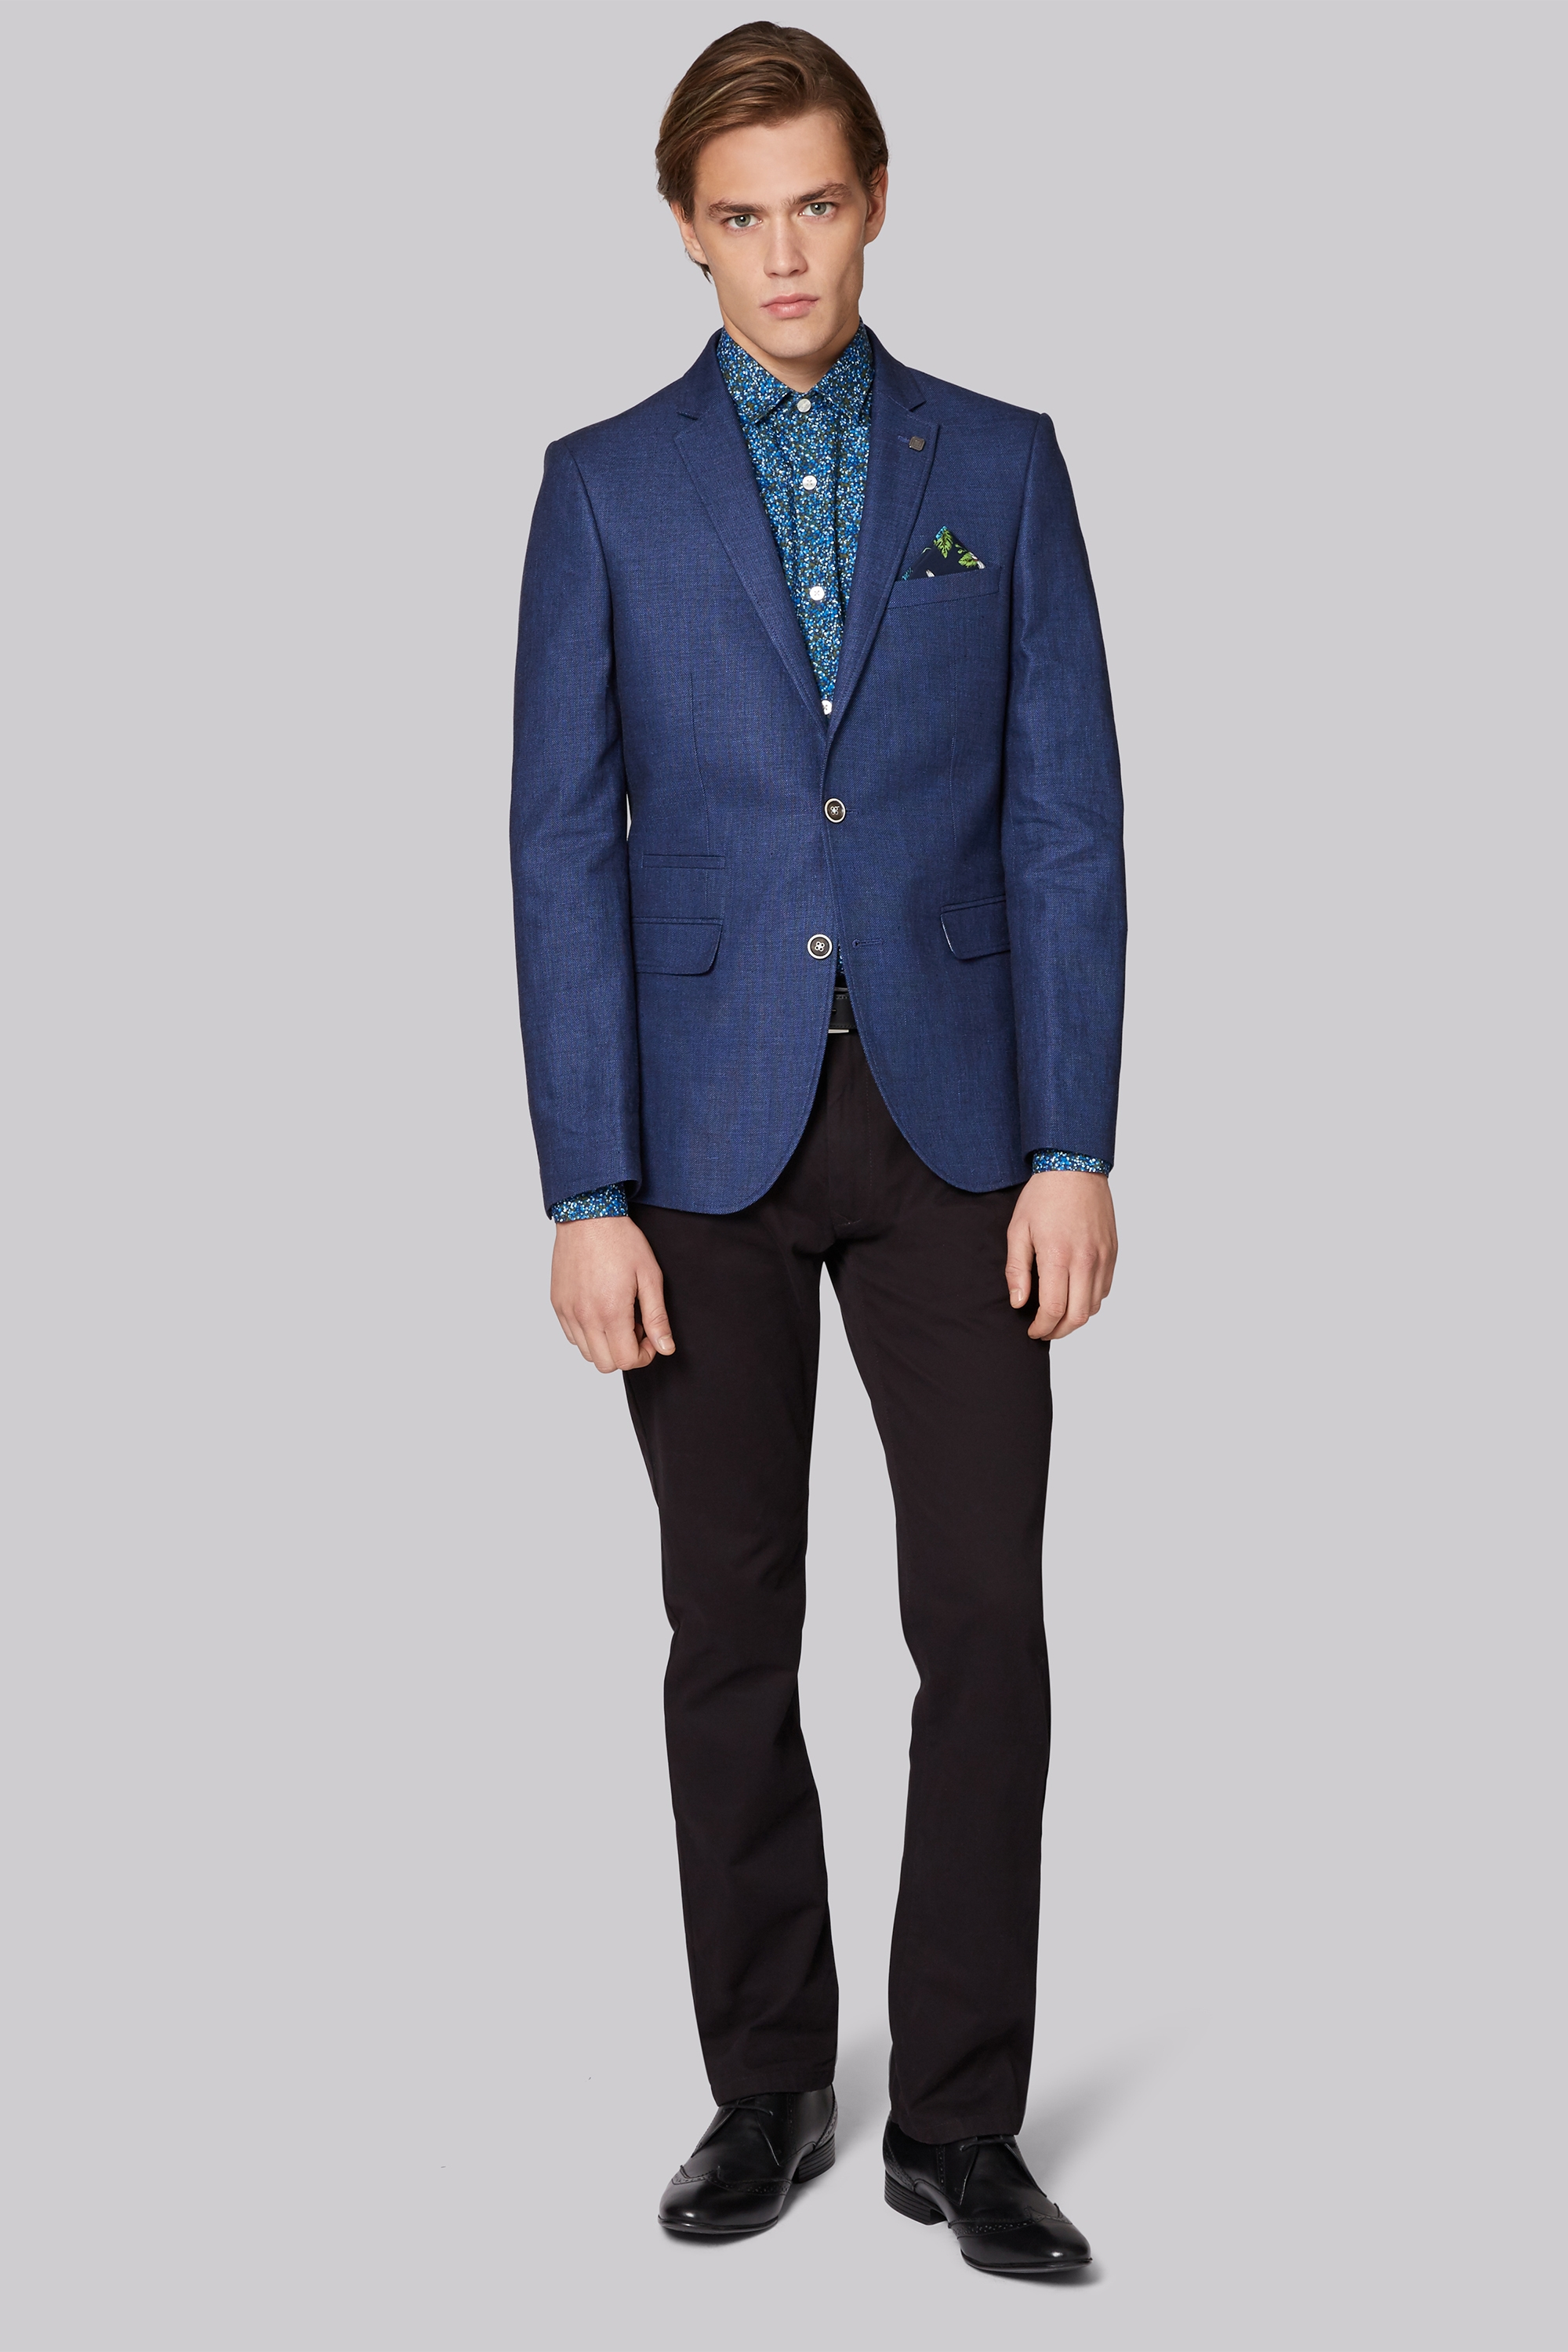 London Slim Fit Blue Linen Cotton Jacket